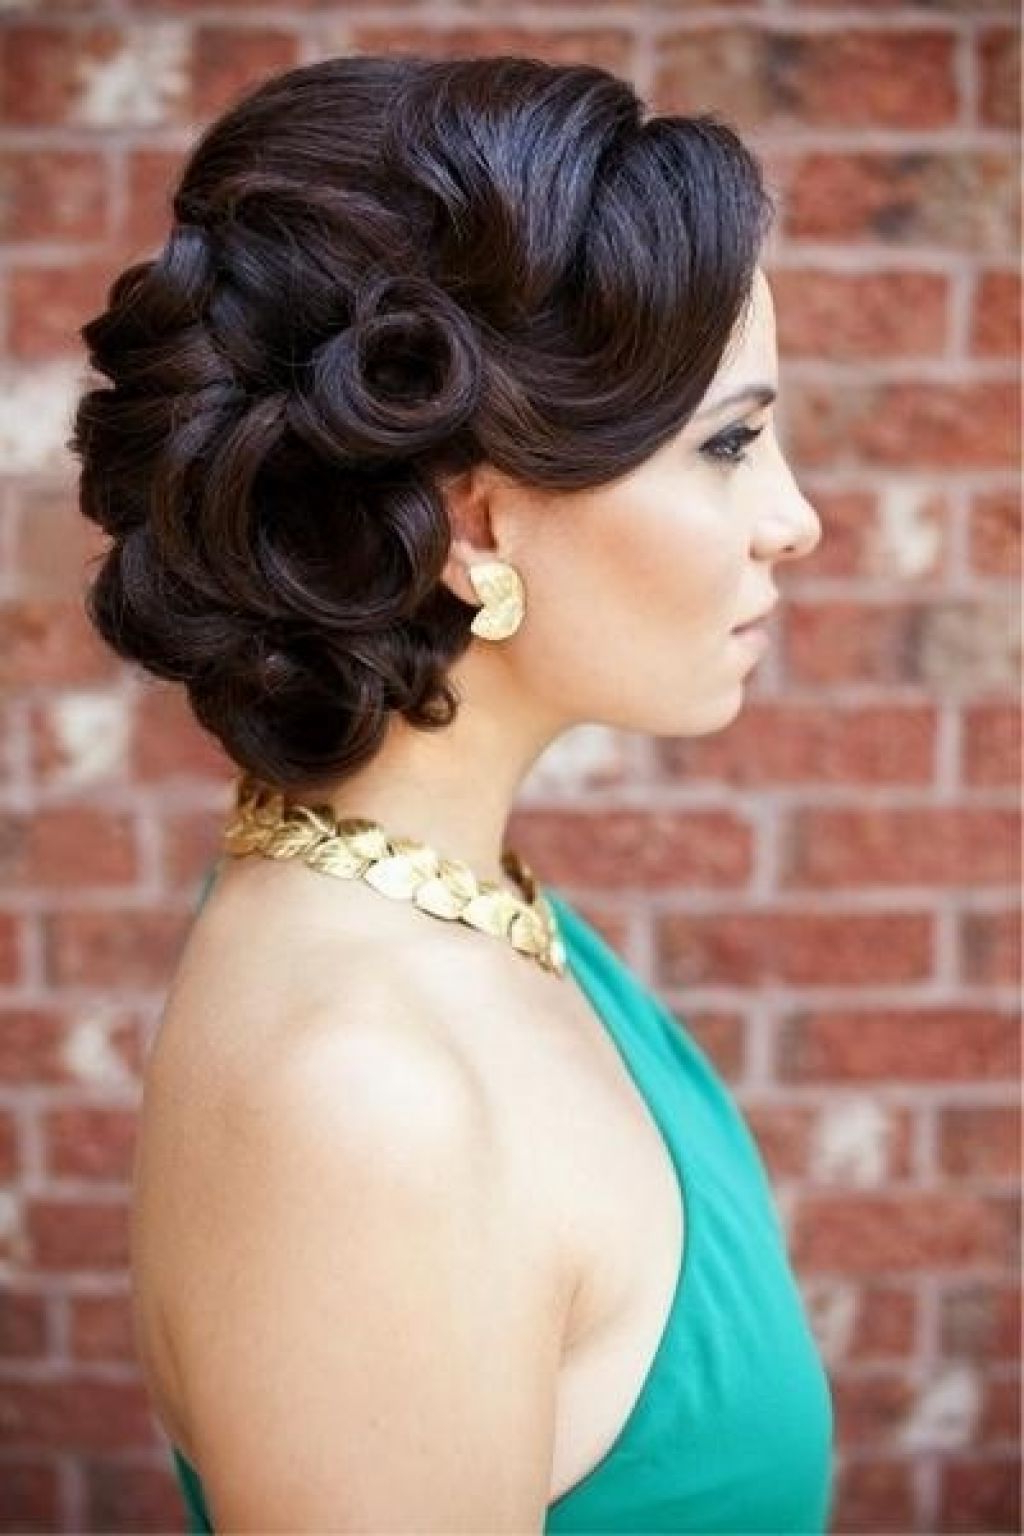 Vintage Wedding Updos For Long Hair1 Vintage Updos For Long Hair Inside Current Retro Wedding Hair Updos With Small Bouffant (Gallery 4 of 20)